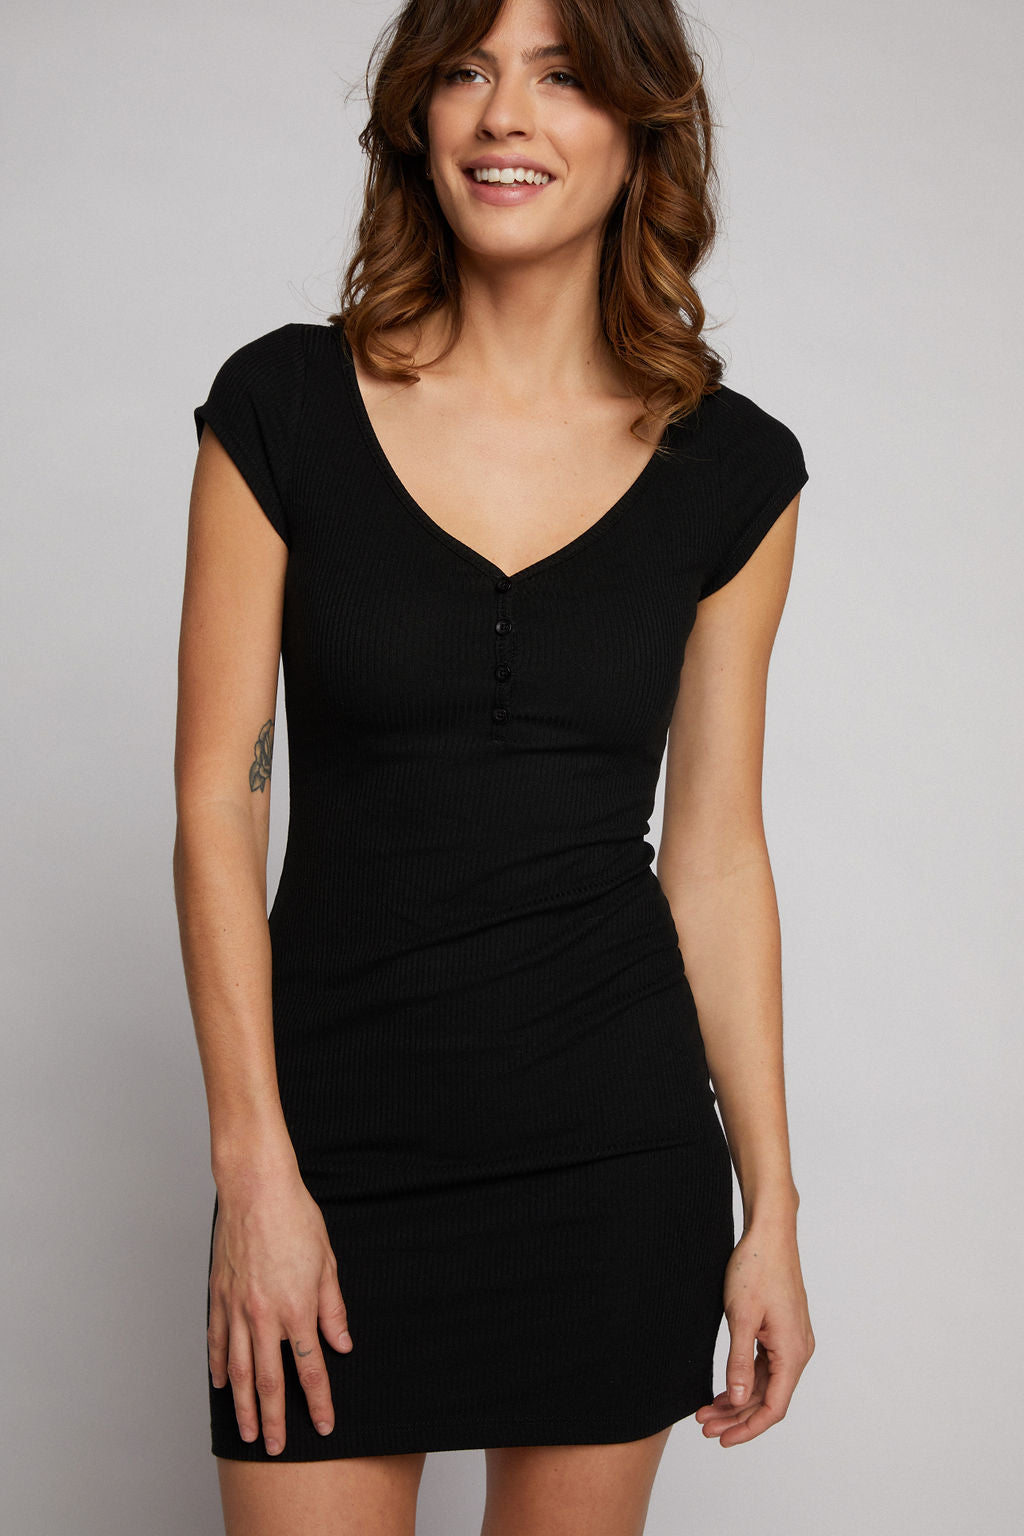 Adriana Dress - Black